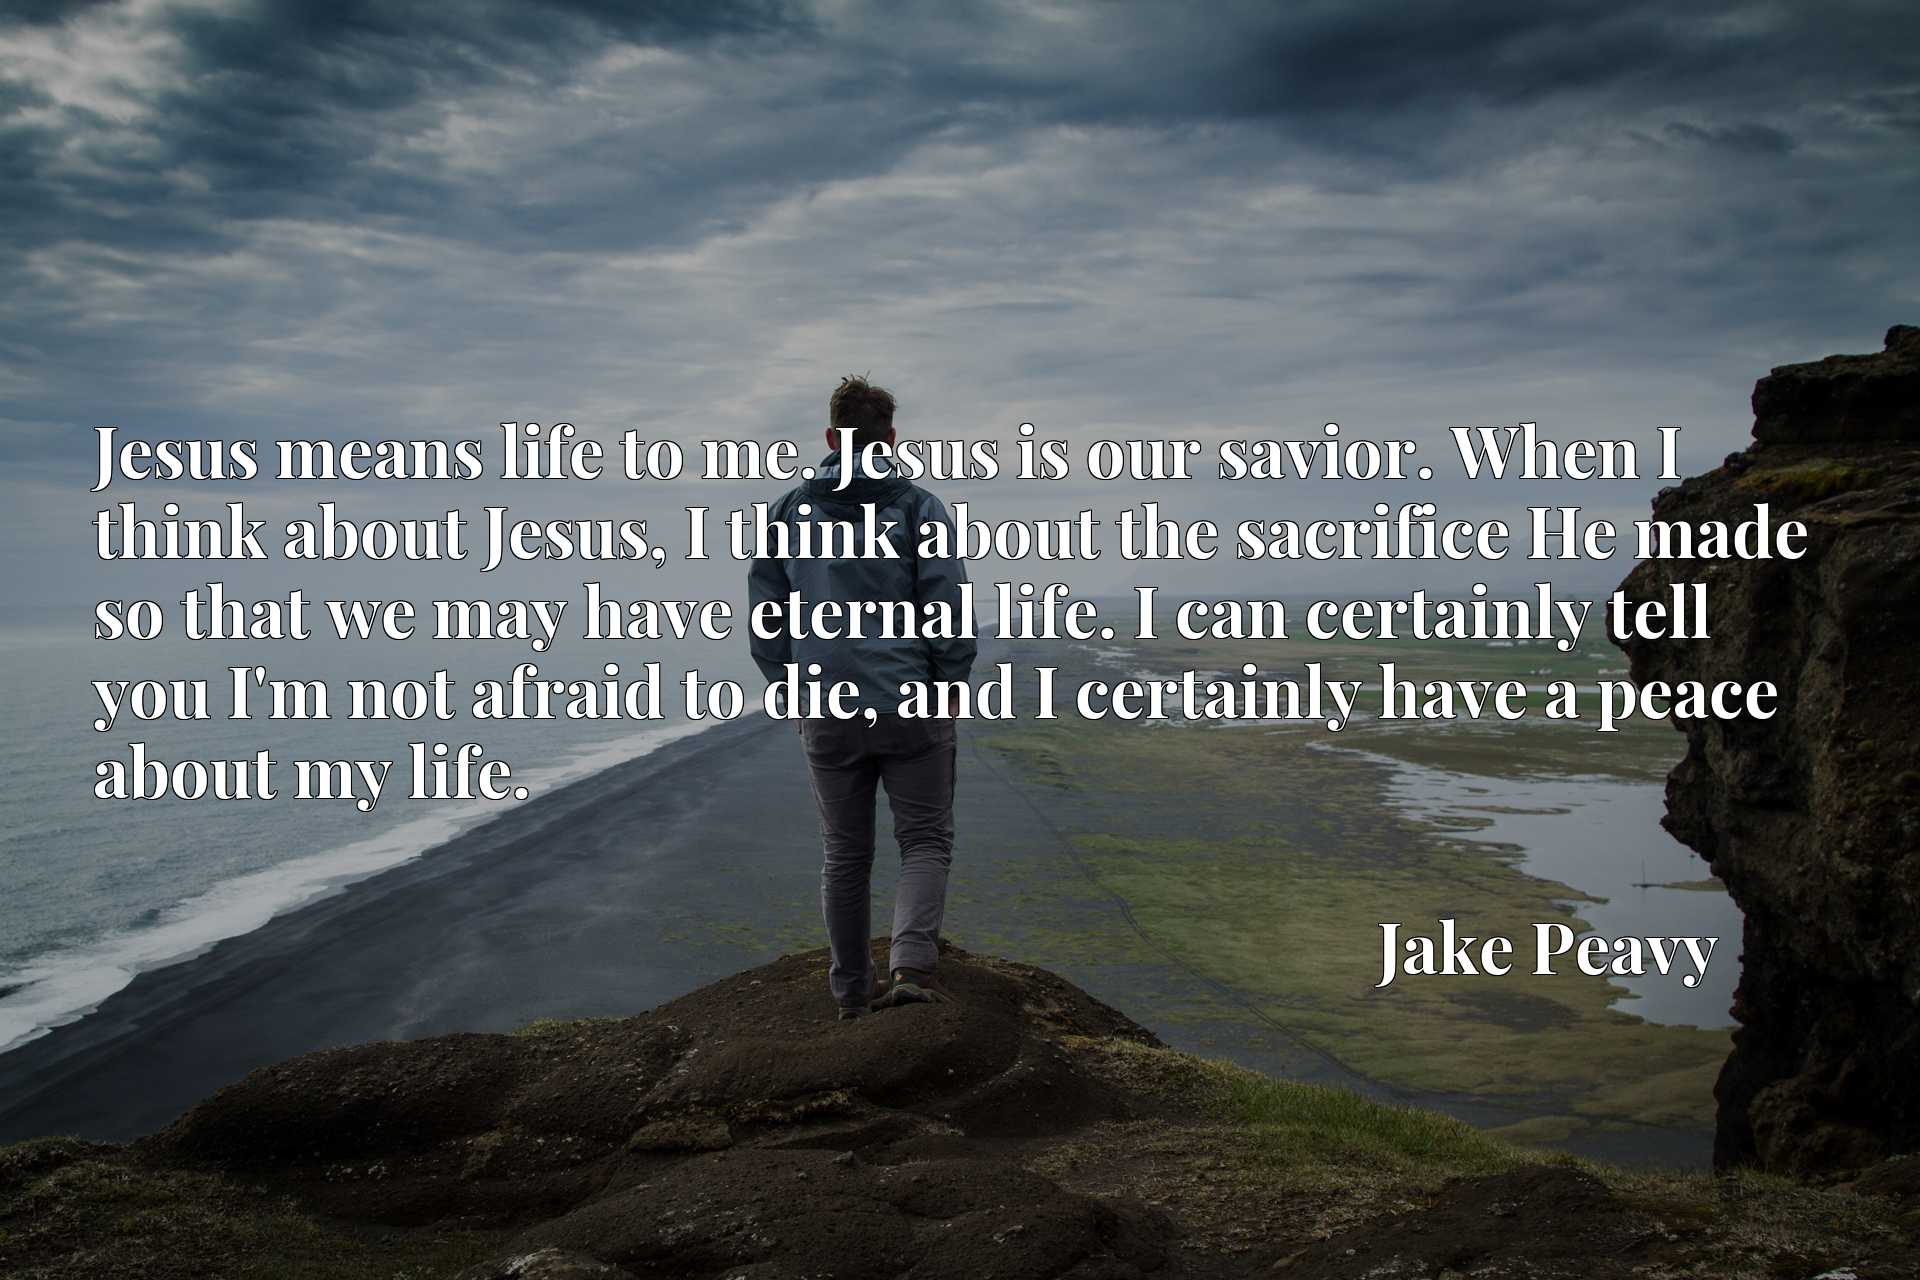 Jesus means life to me. Jesus is our savior. When I think about Jesus, I think about the sacrifice He made so that we may have eternal life. I can certainly tell you I'm not afraid to die, and I certainly have a peace about my life.